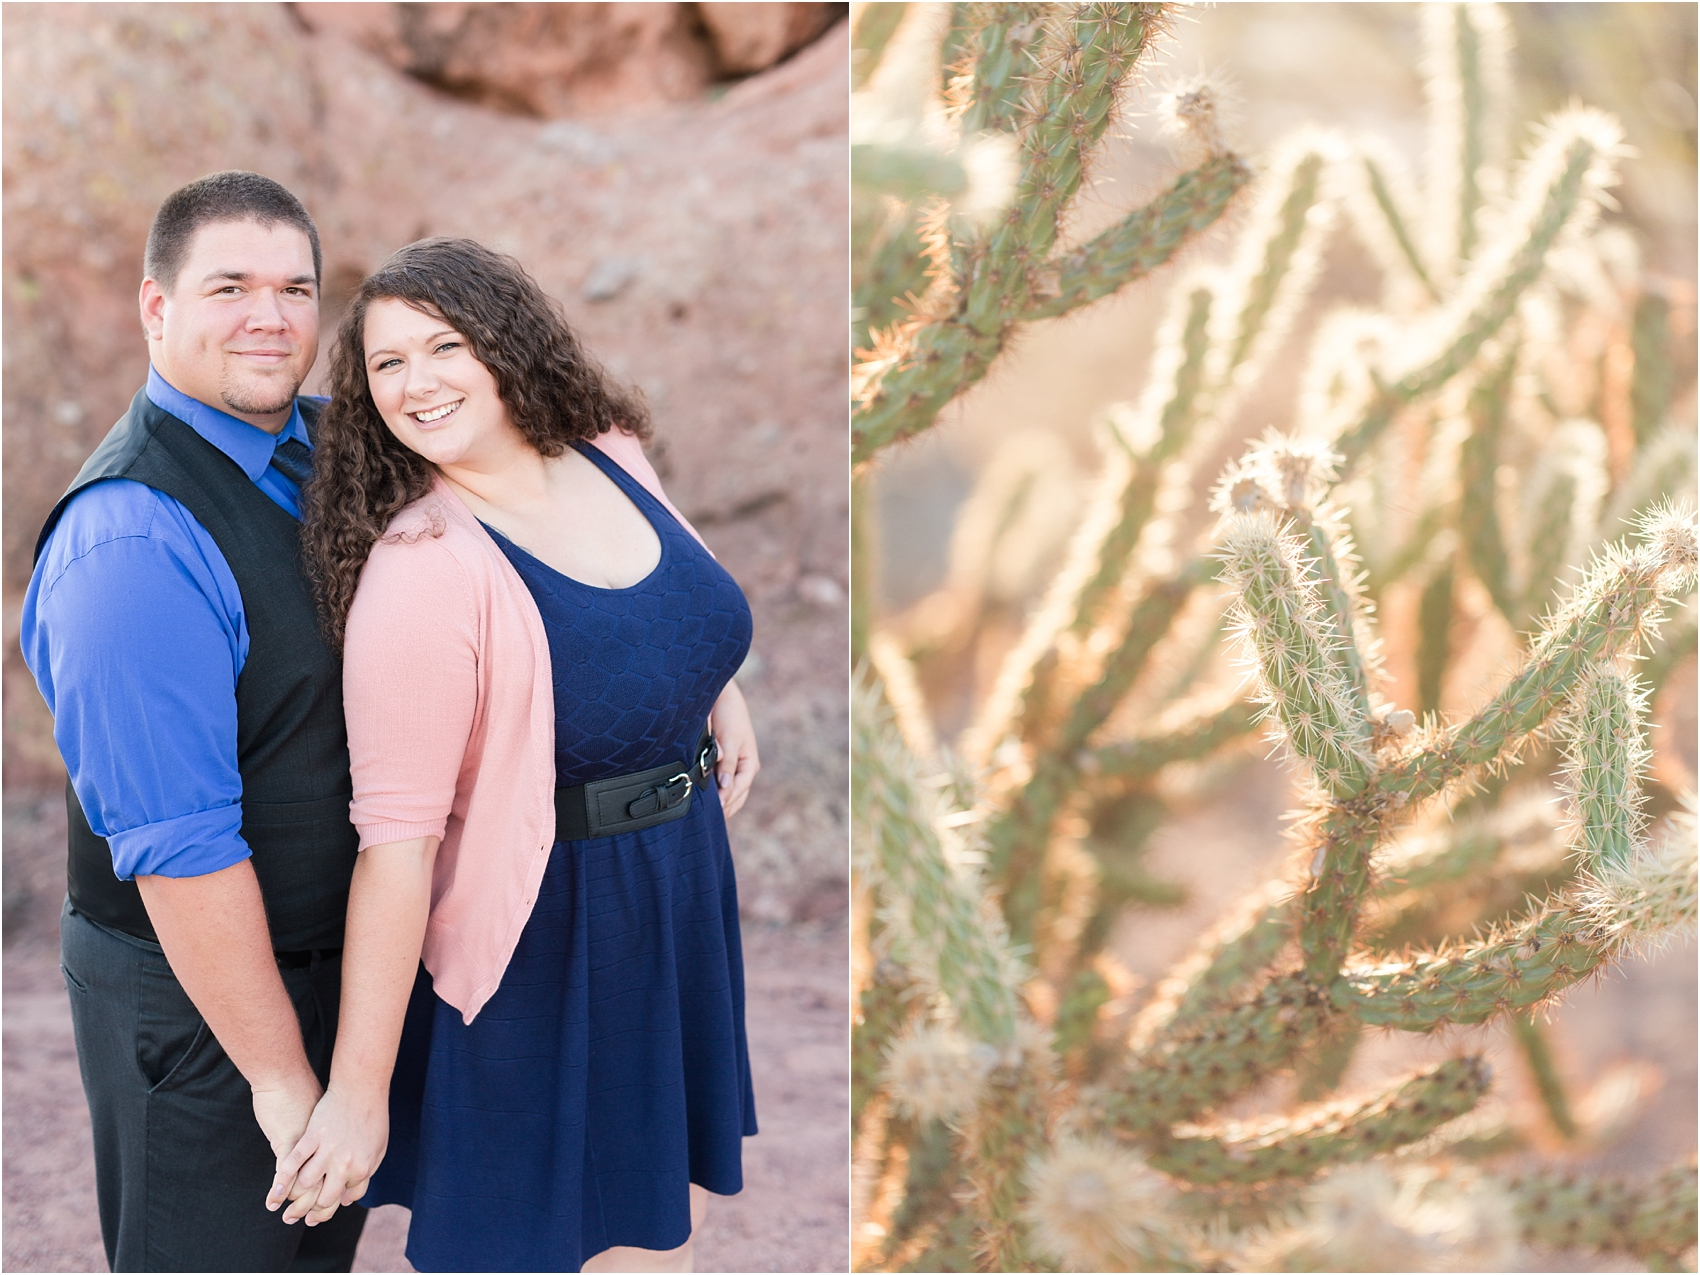 romantic-desert-engagement-photos-in-scottsdale-arizona-courtney-carolyn-photography-by-katelyn-james_0012.jpg